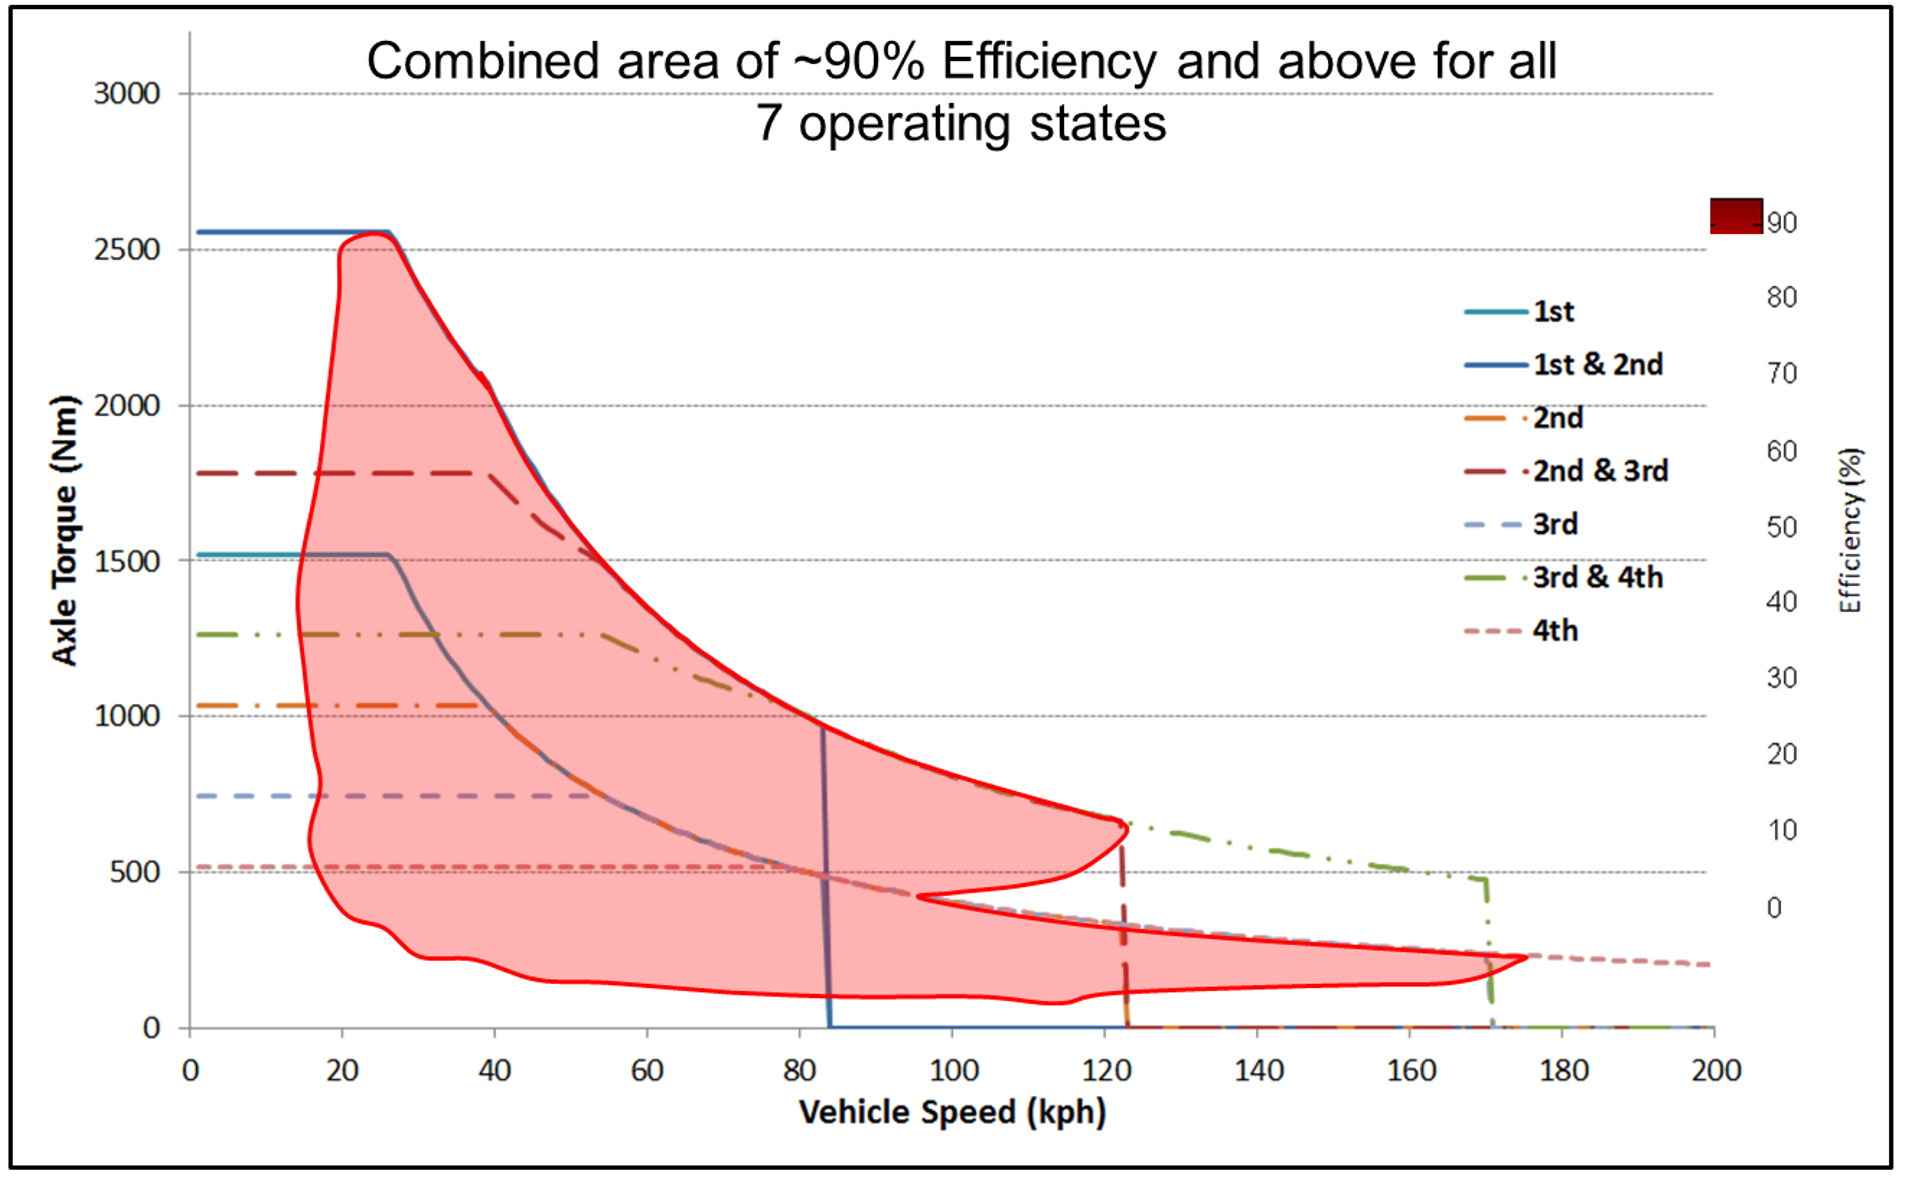 Combined area of efficiency for all operating states